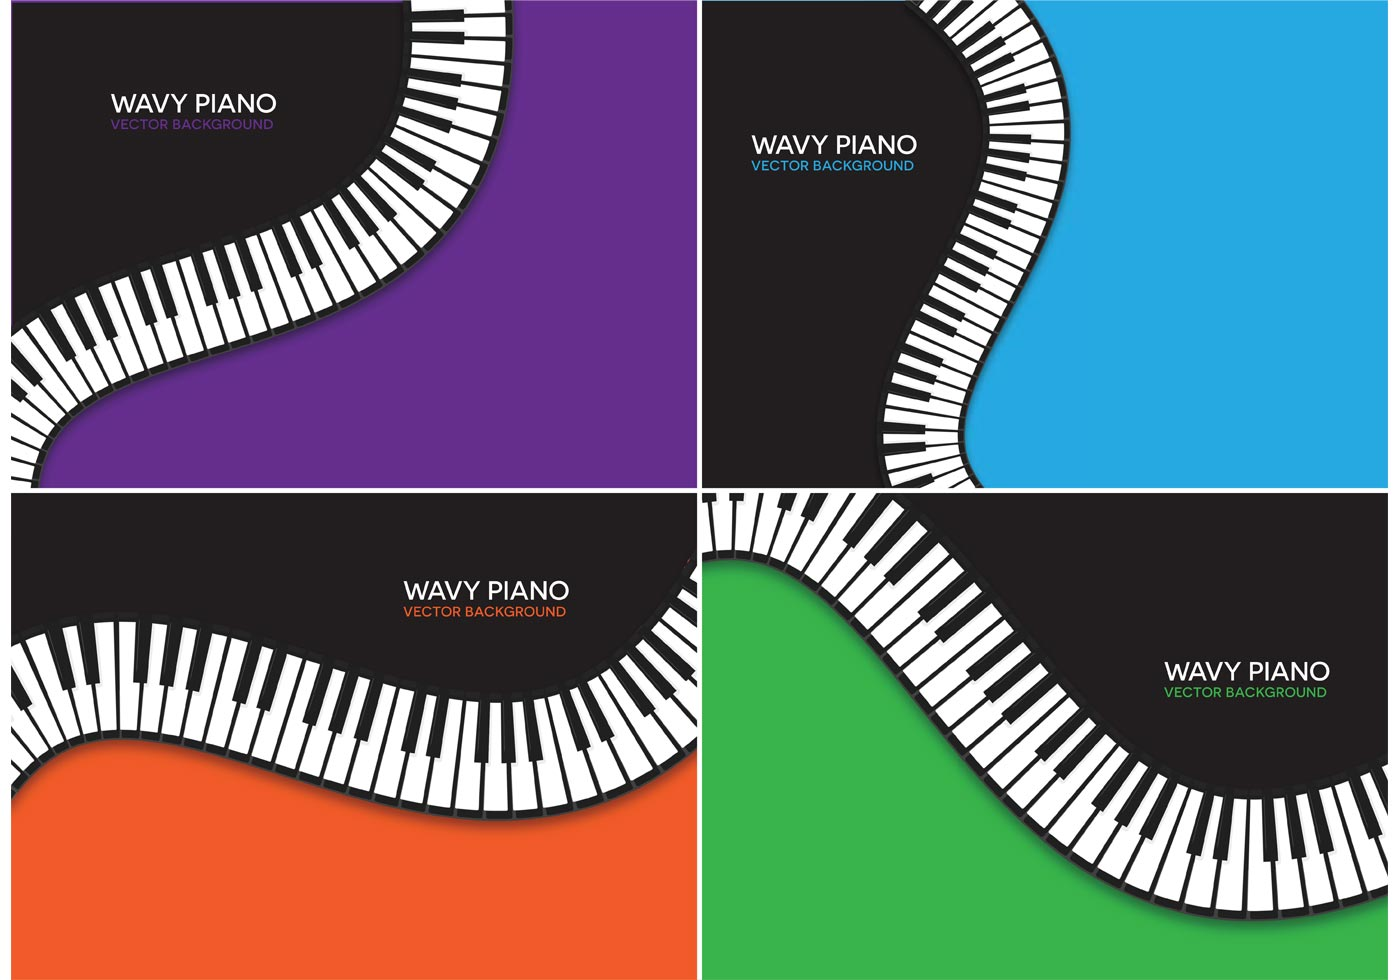 Free Wavy Piano Vector Backgrounds - Download Free Vector ...